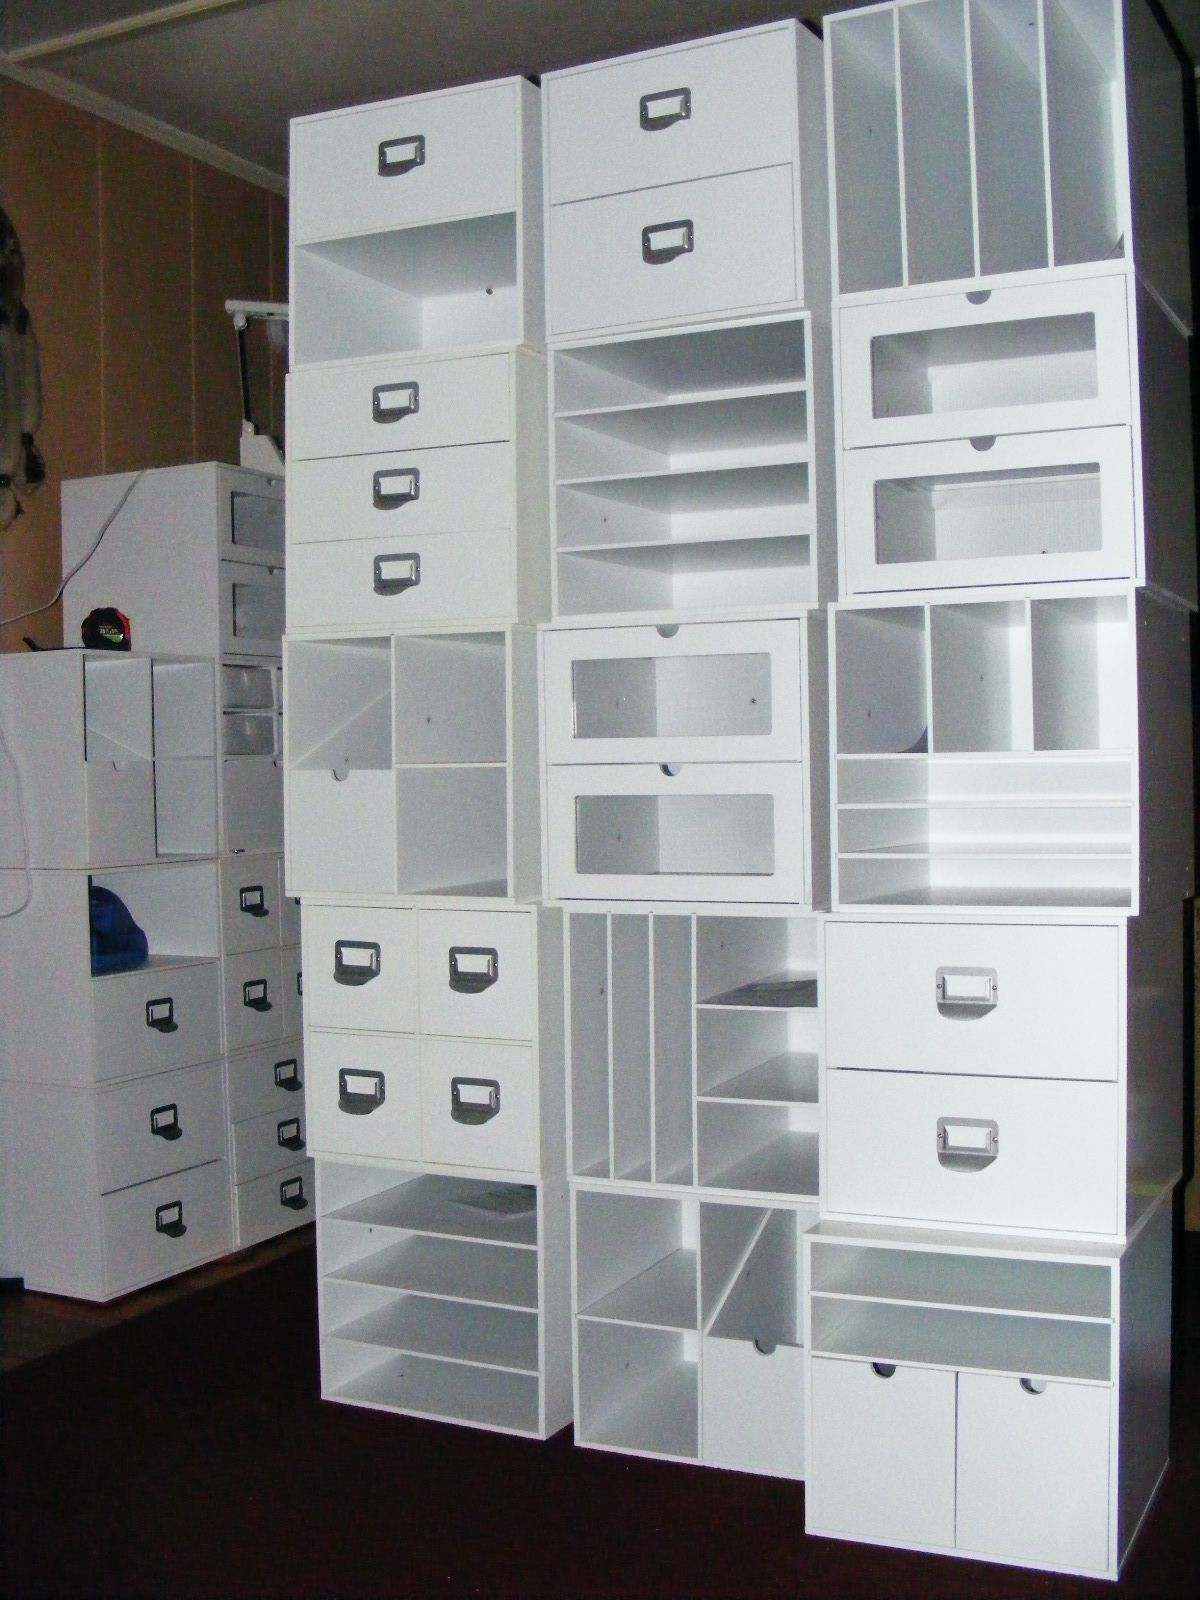 10x10 Room Layout Craft: More New Storage Cubes From M's